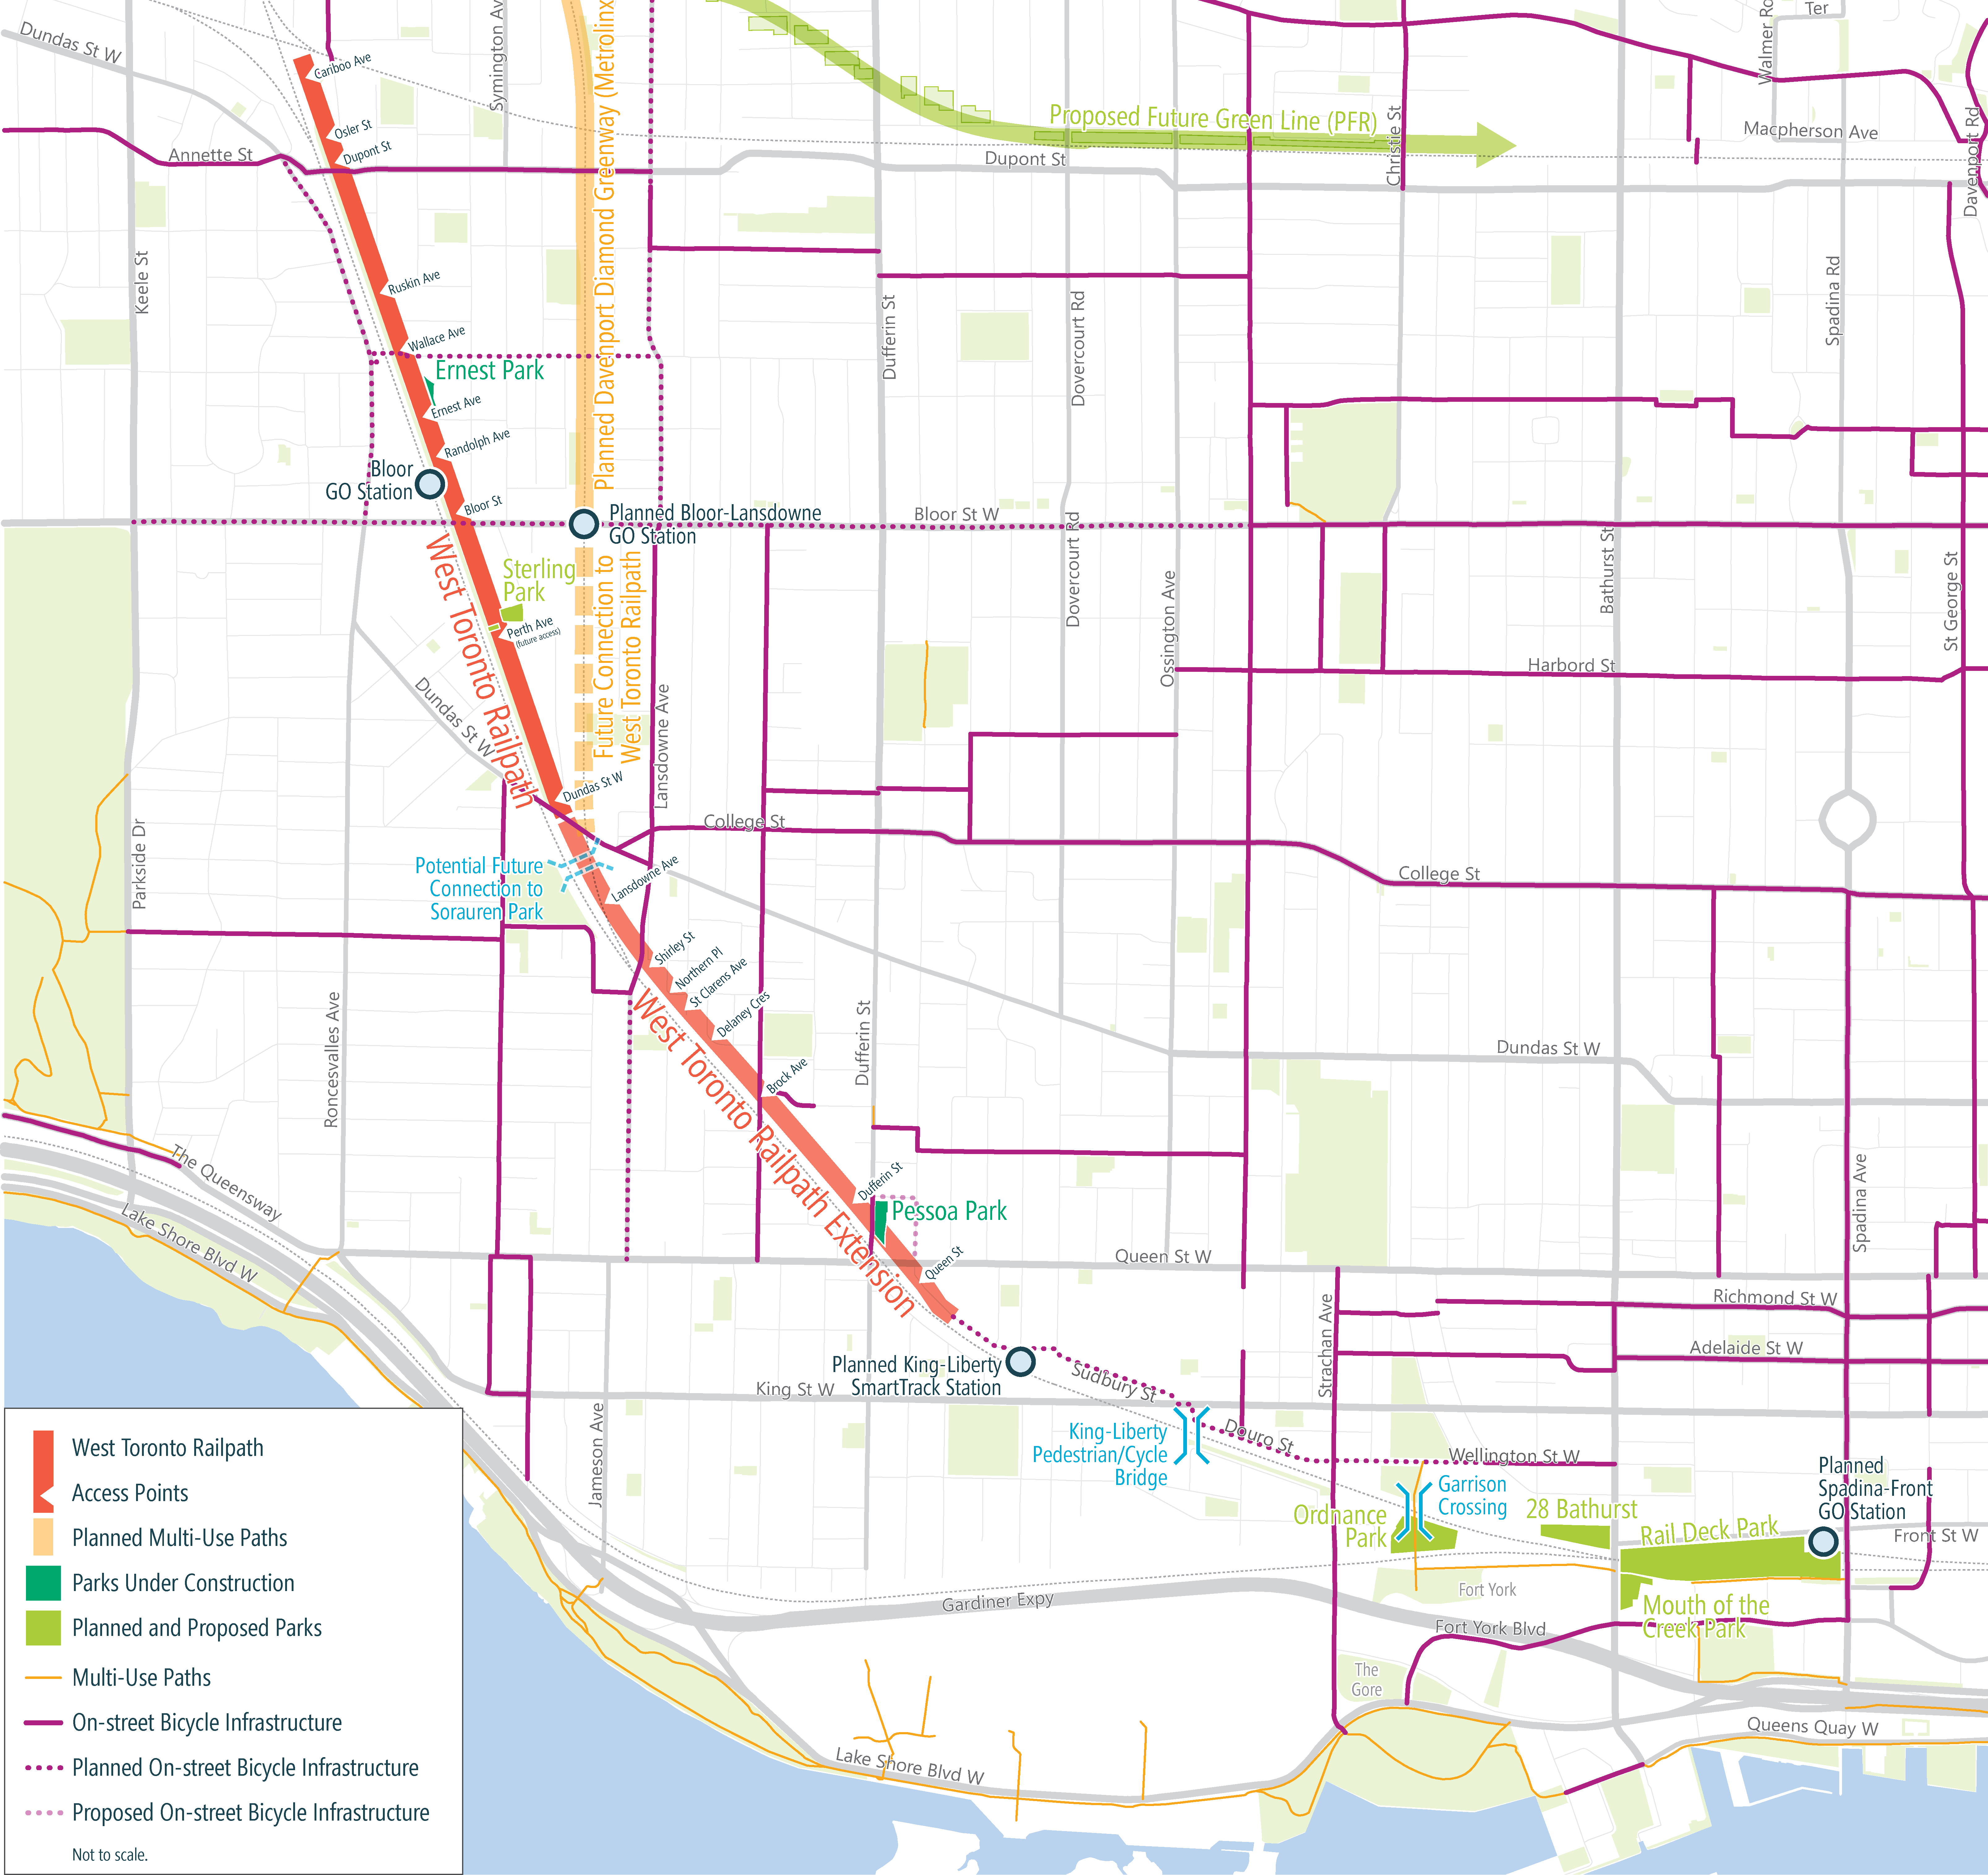 A map of the West Toronto Railpath Extension project area, along with adjacent proposed and planned bike facilities and green spaces